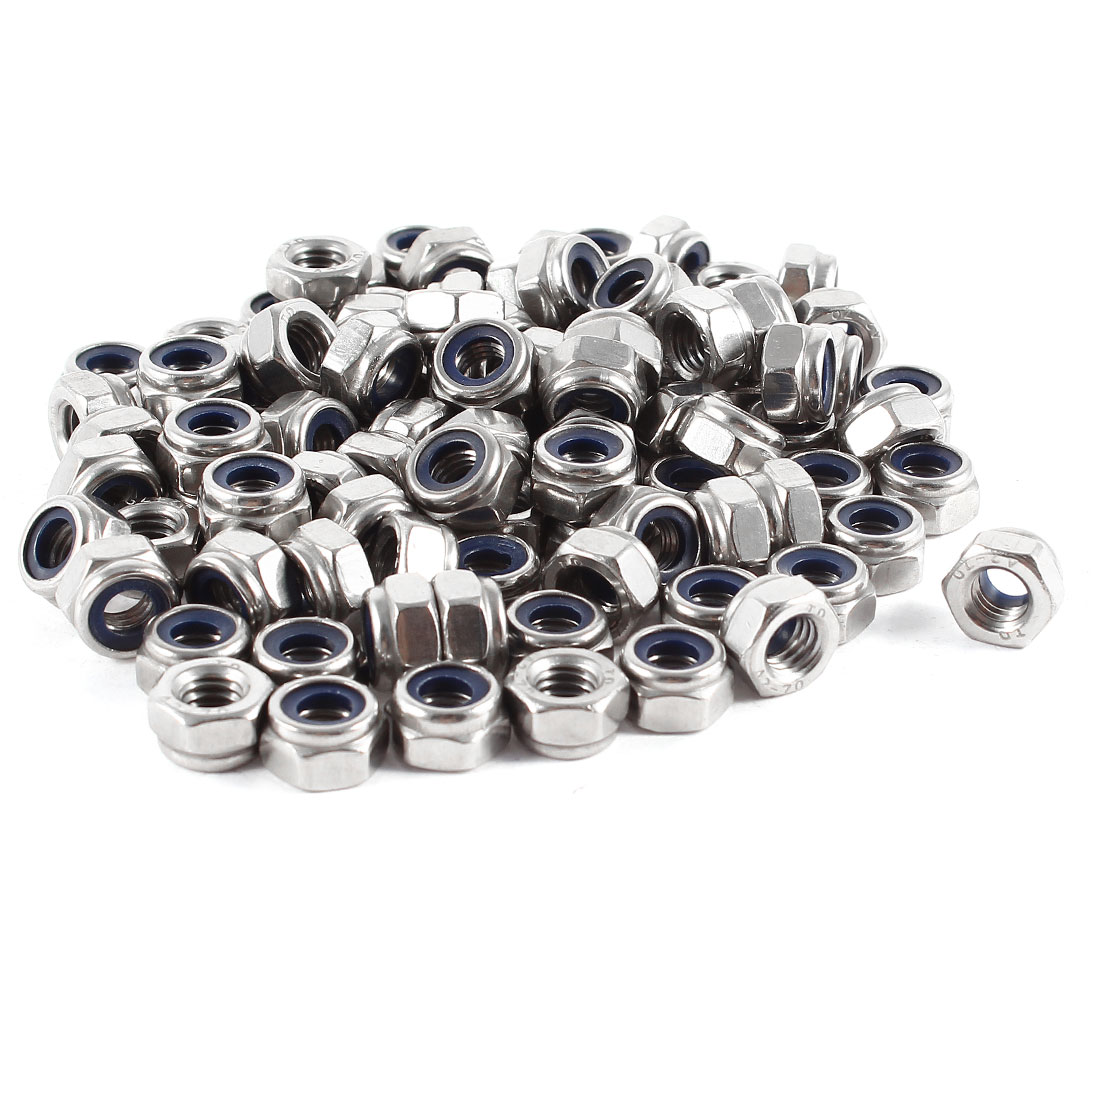 100 Pcs 304HC A2 70 A2-70 Stainless Steel Hex Nylock Nyloc Lock Nut M6 6mm